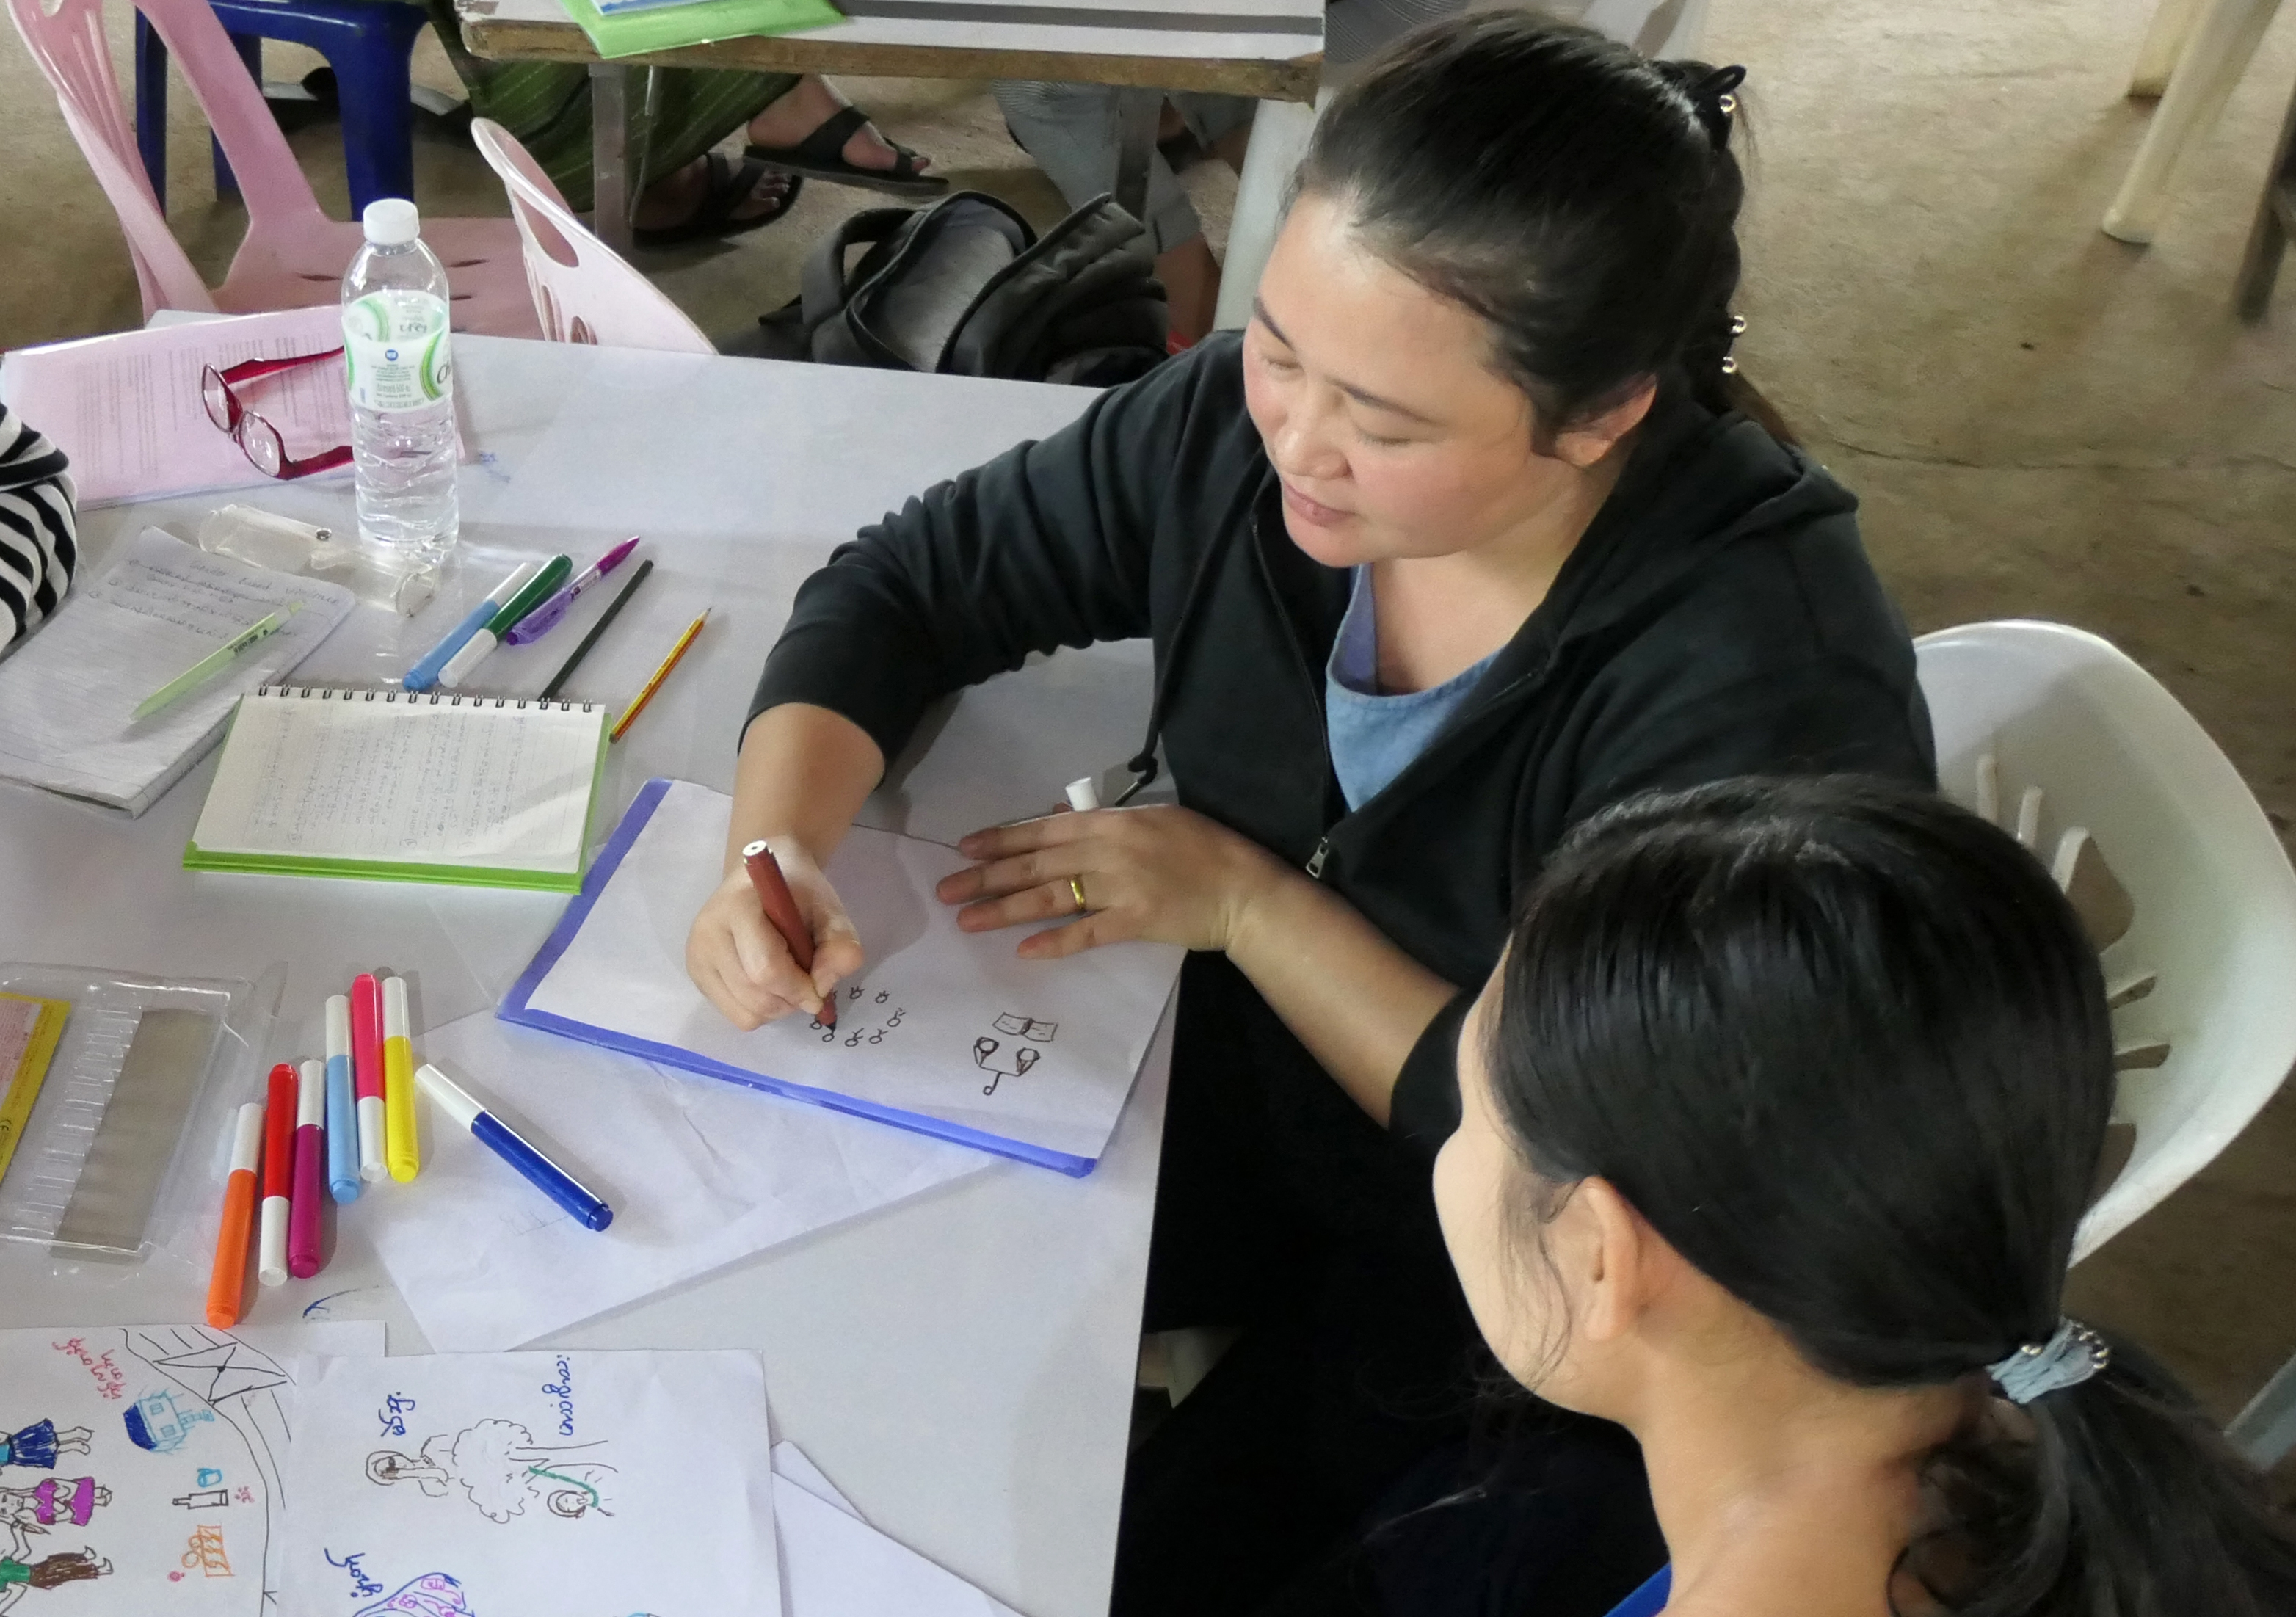 Refugee women drawing storyboards seated at a desk